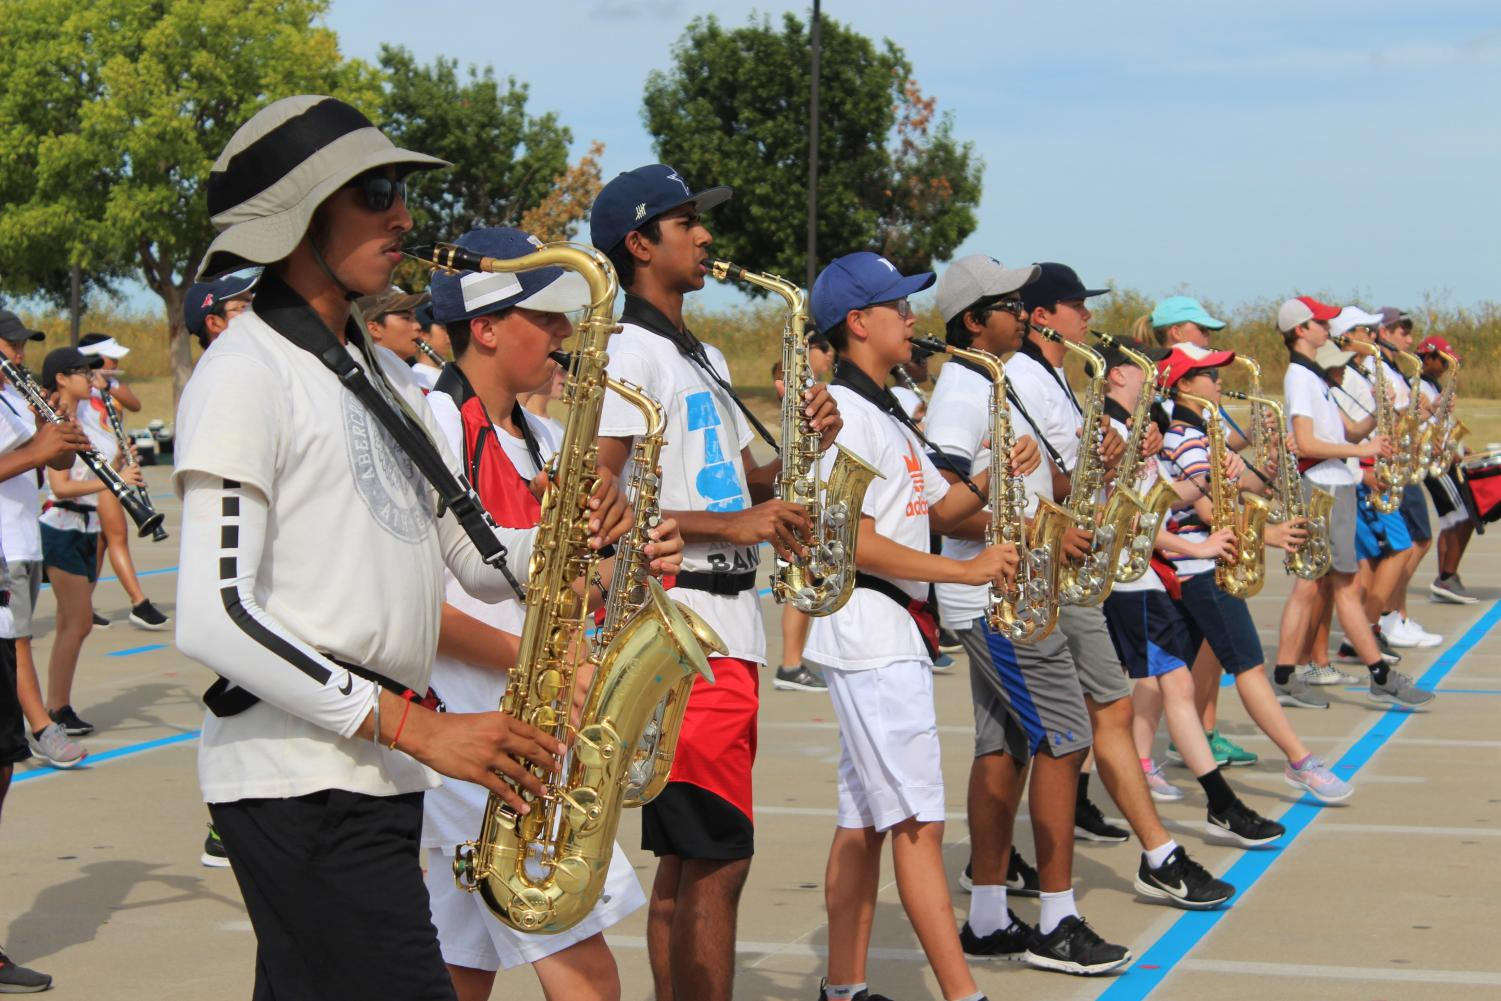 With The Little Elm Classic on Homecoming, September 28th, band members had to miss out on the annual event.  Although members of the band didn't have a chance to go, the band is hosting its own Homecoming Saturday letting members to put down their instruments for one night.